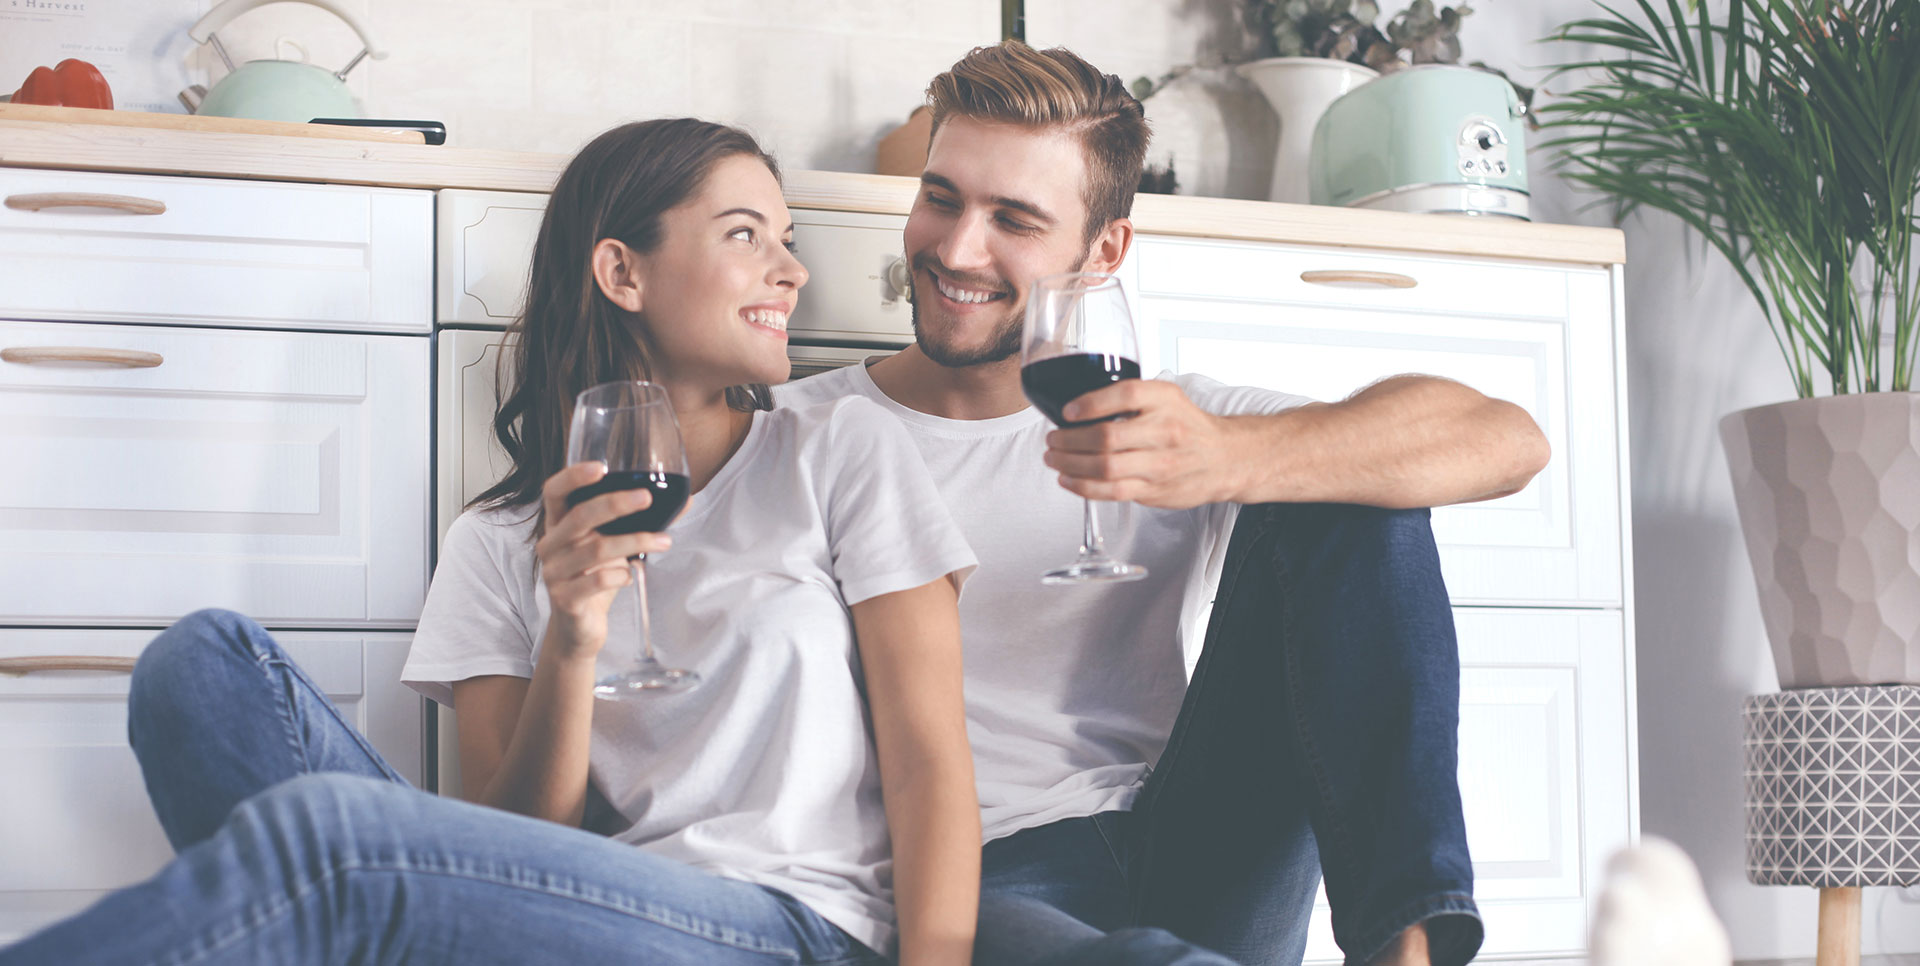 Couple enjoying wine after moving into their new home